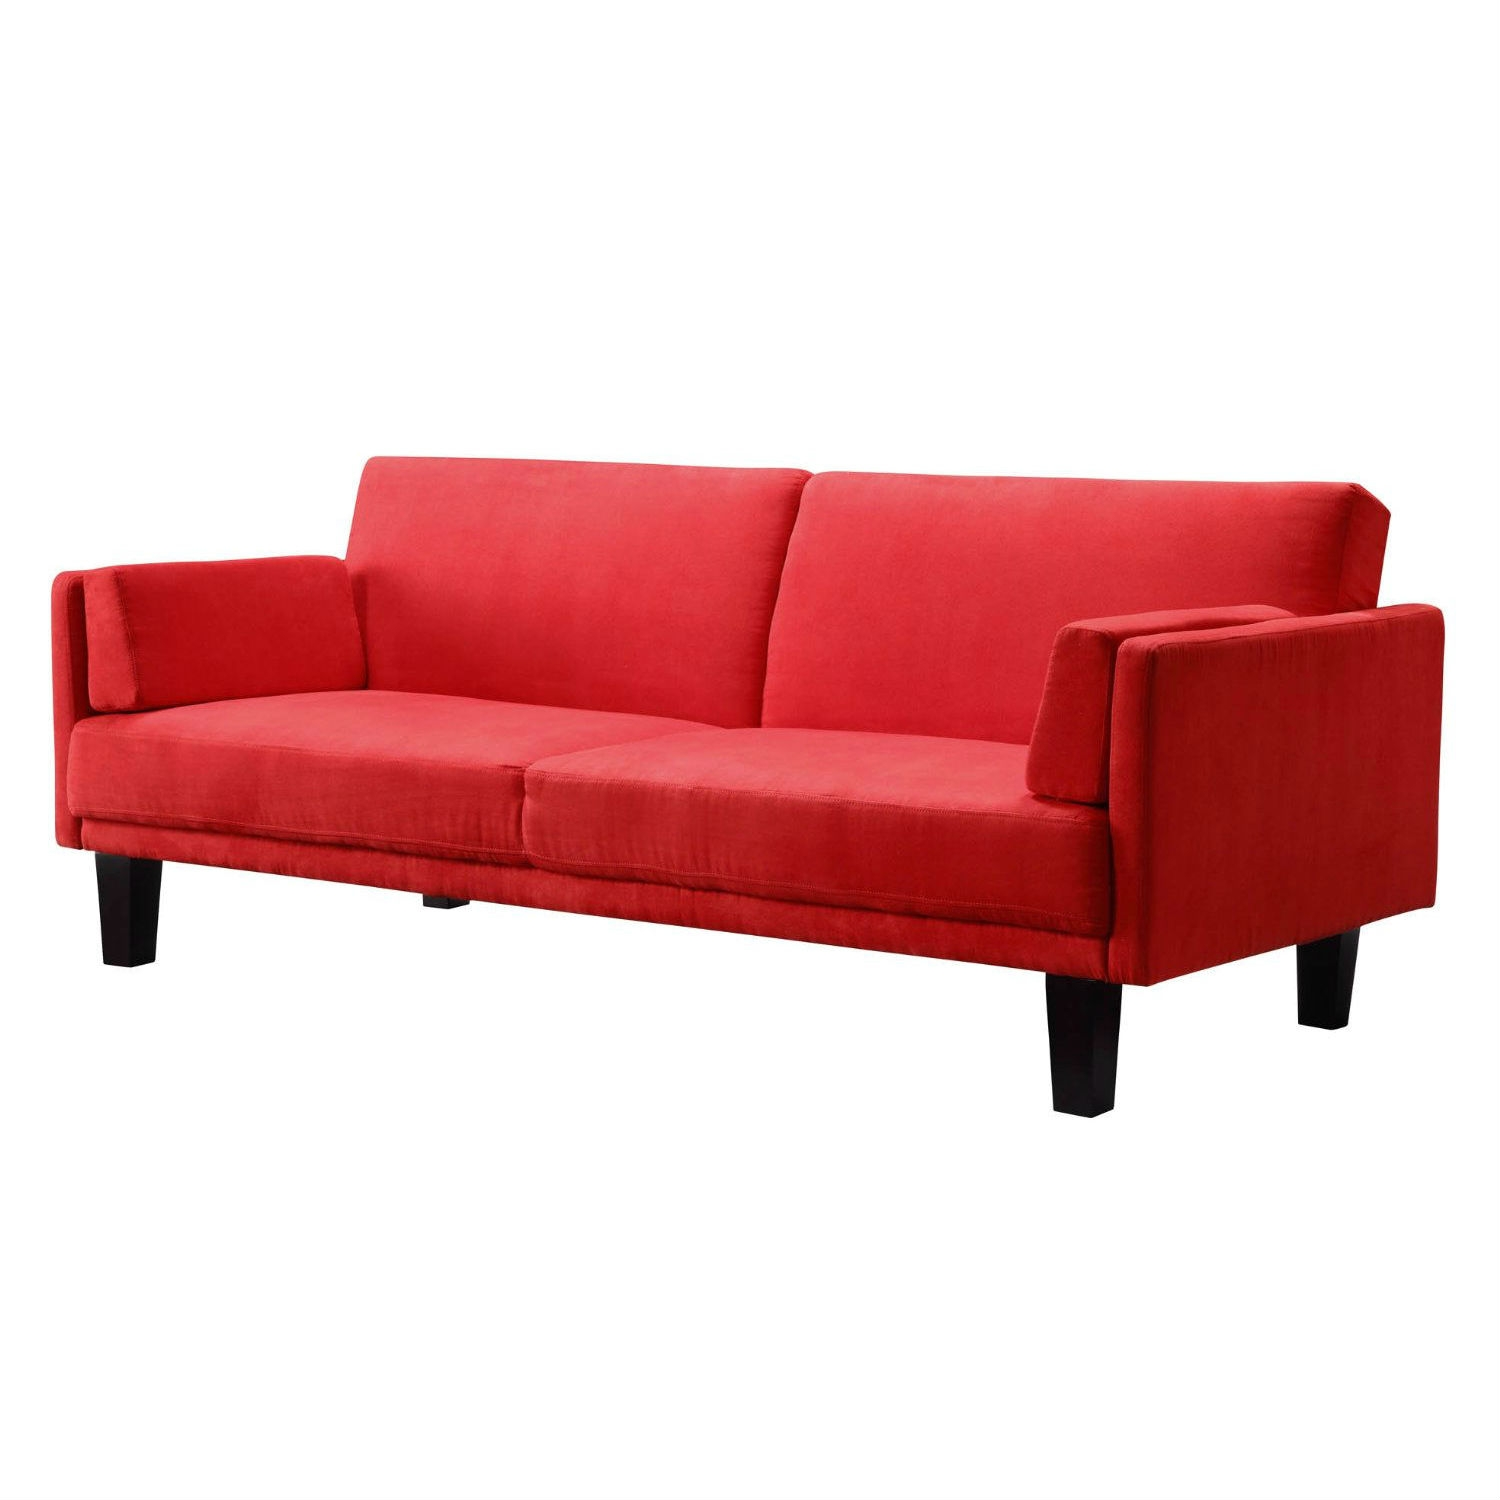 ^ ontemporary Mid-entury Style Sofa Bed in ed Microfiber ...